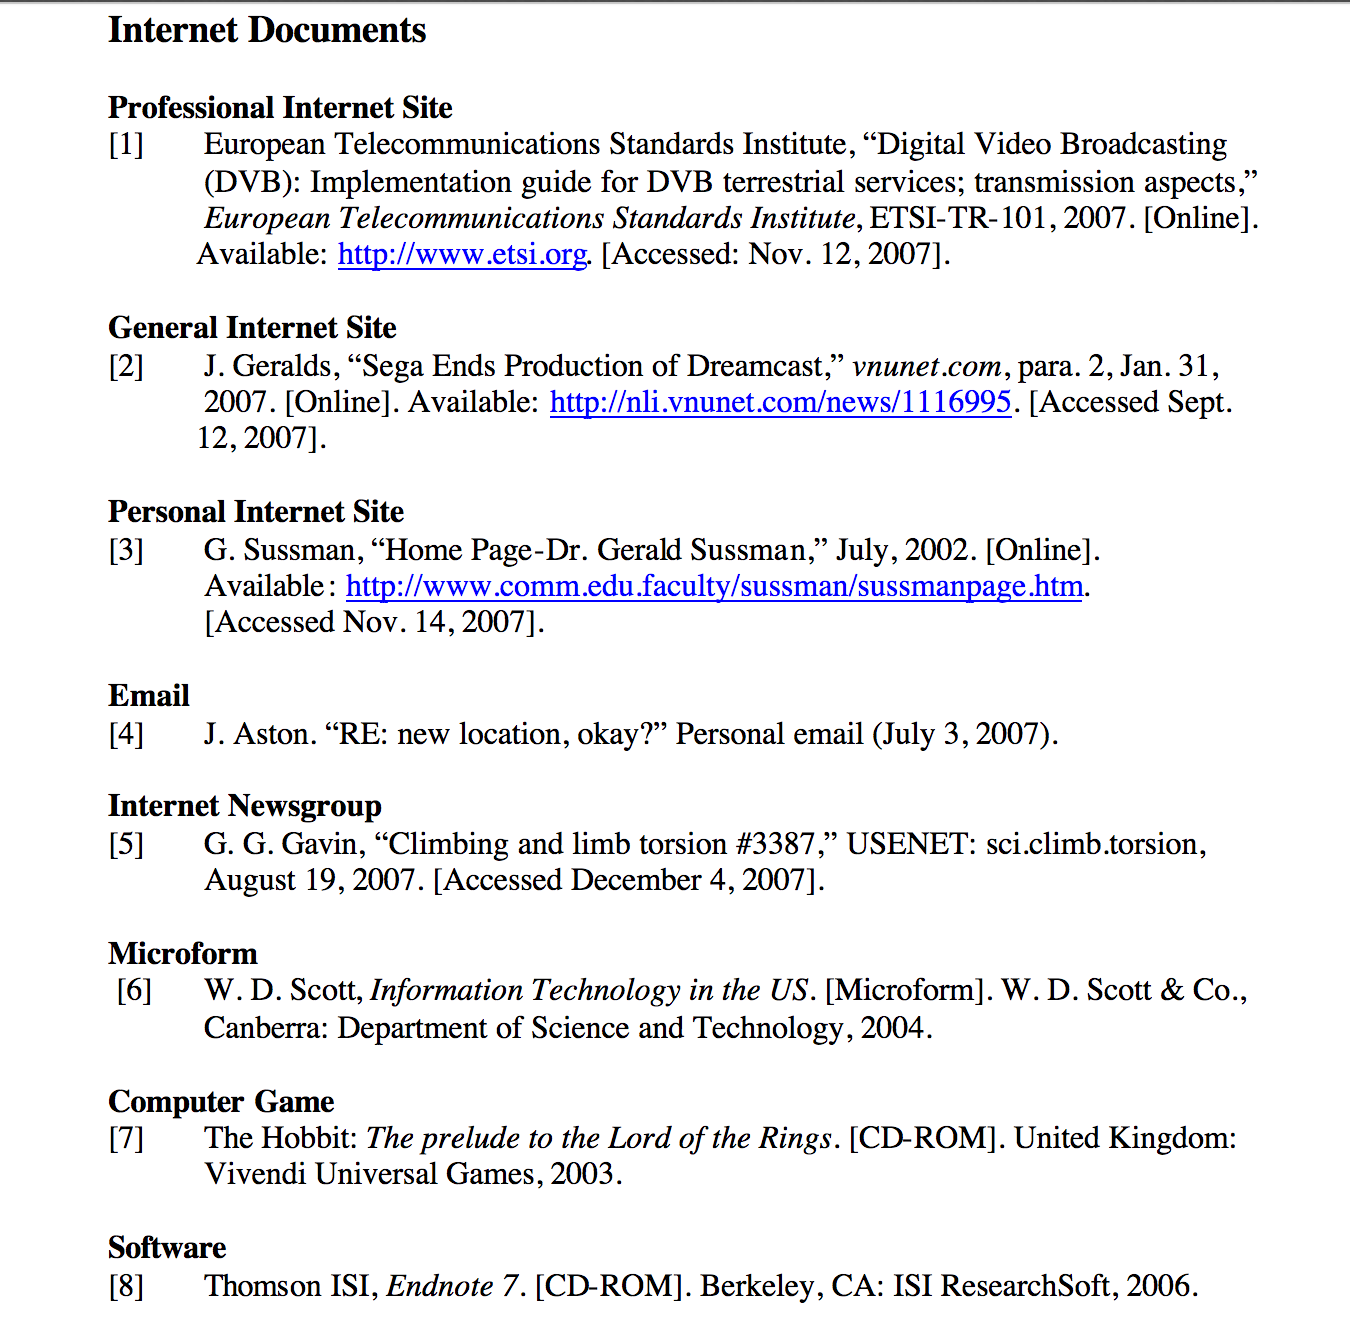 003 Ieee Format For References In Research Paper 2 1528899709 Exceptional Full